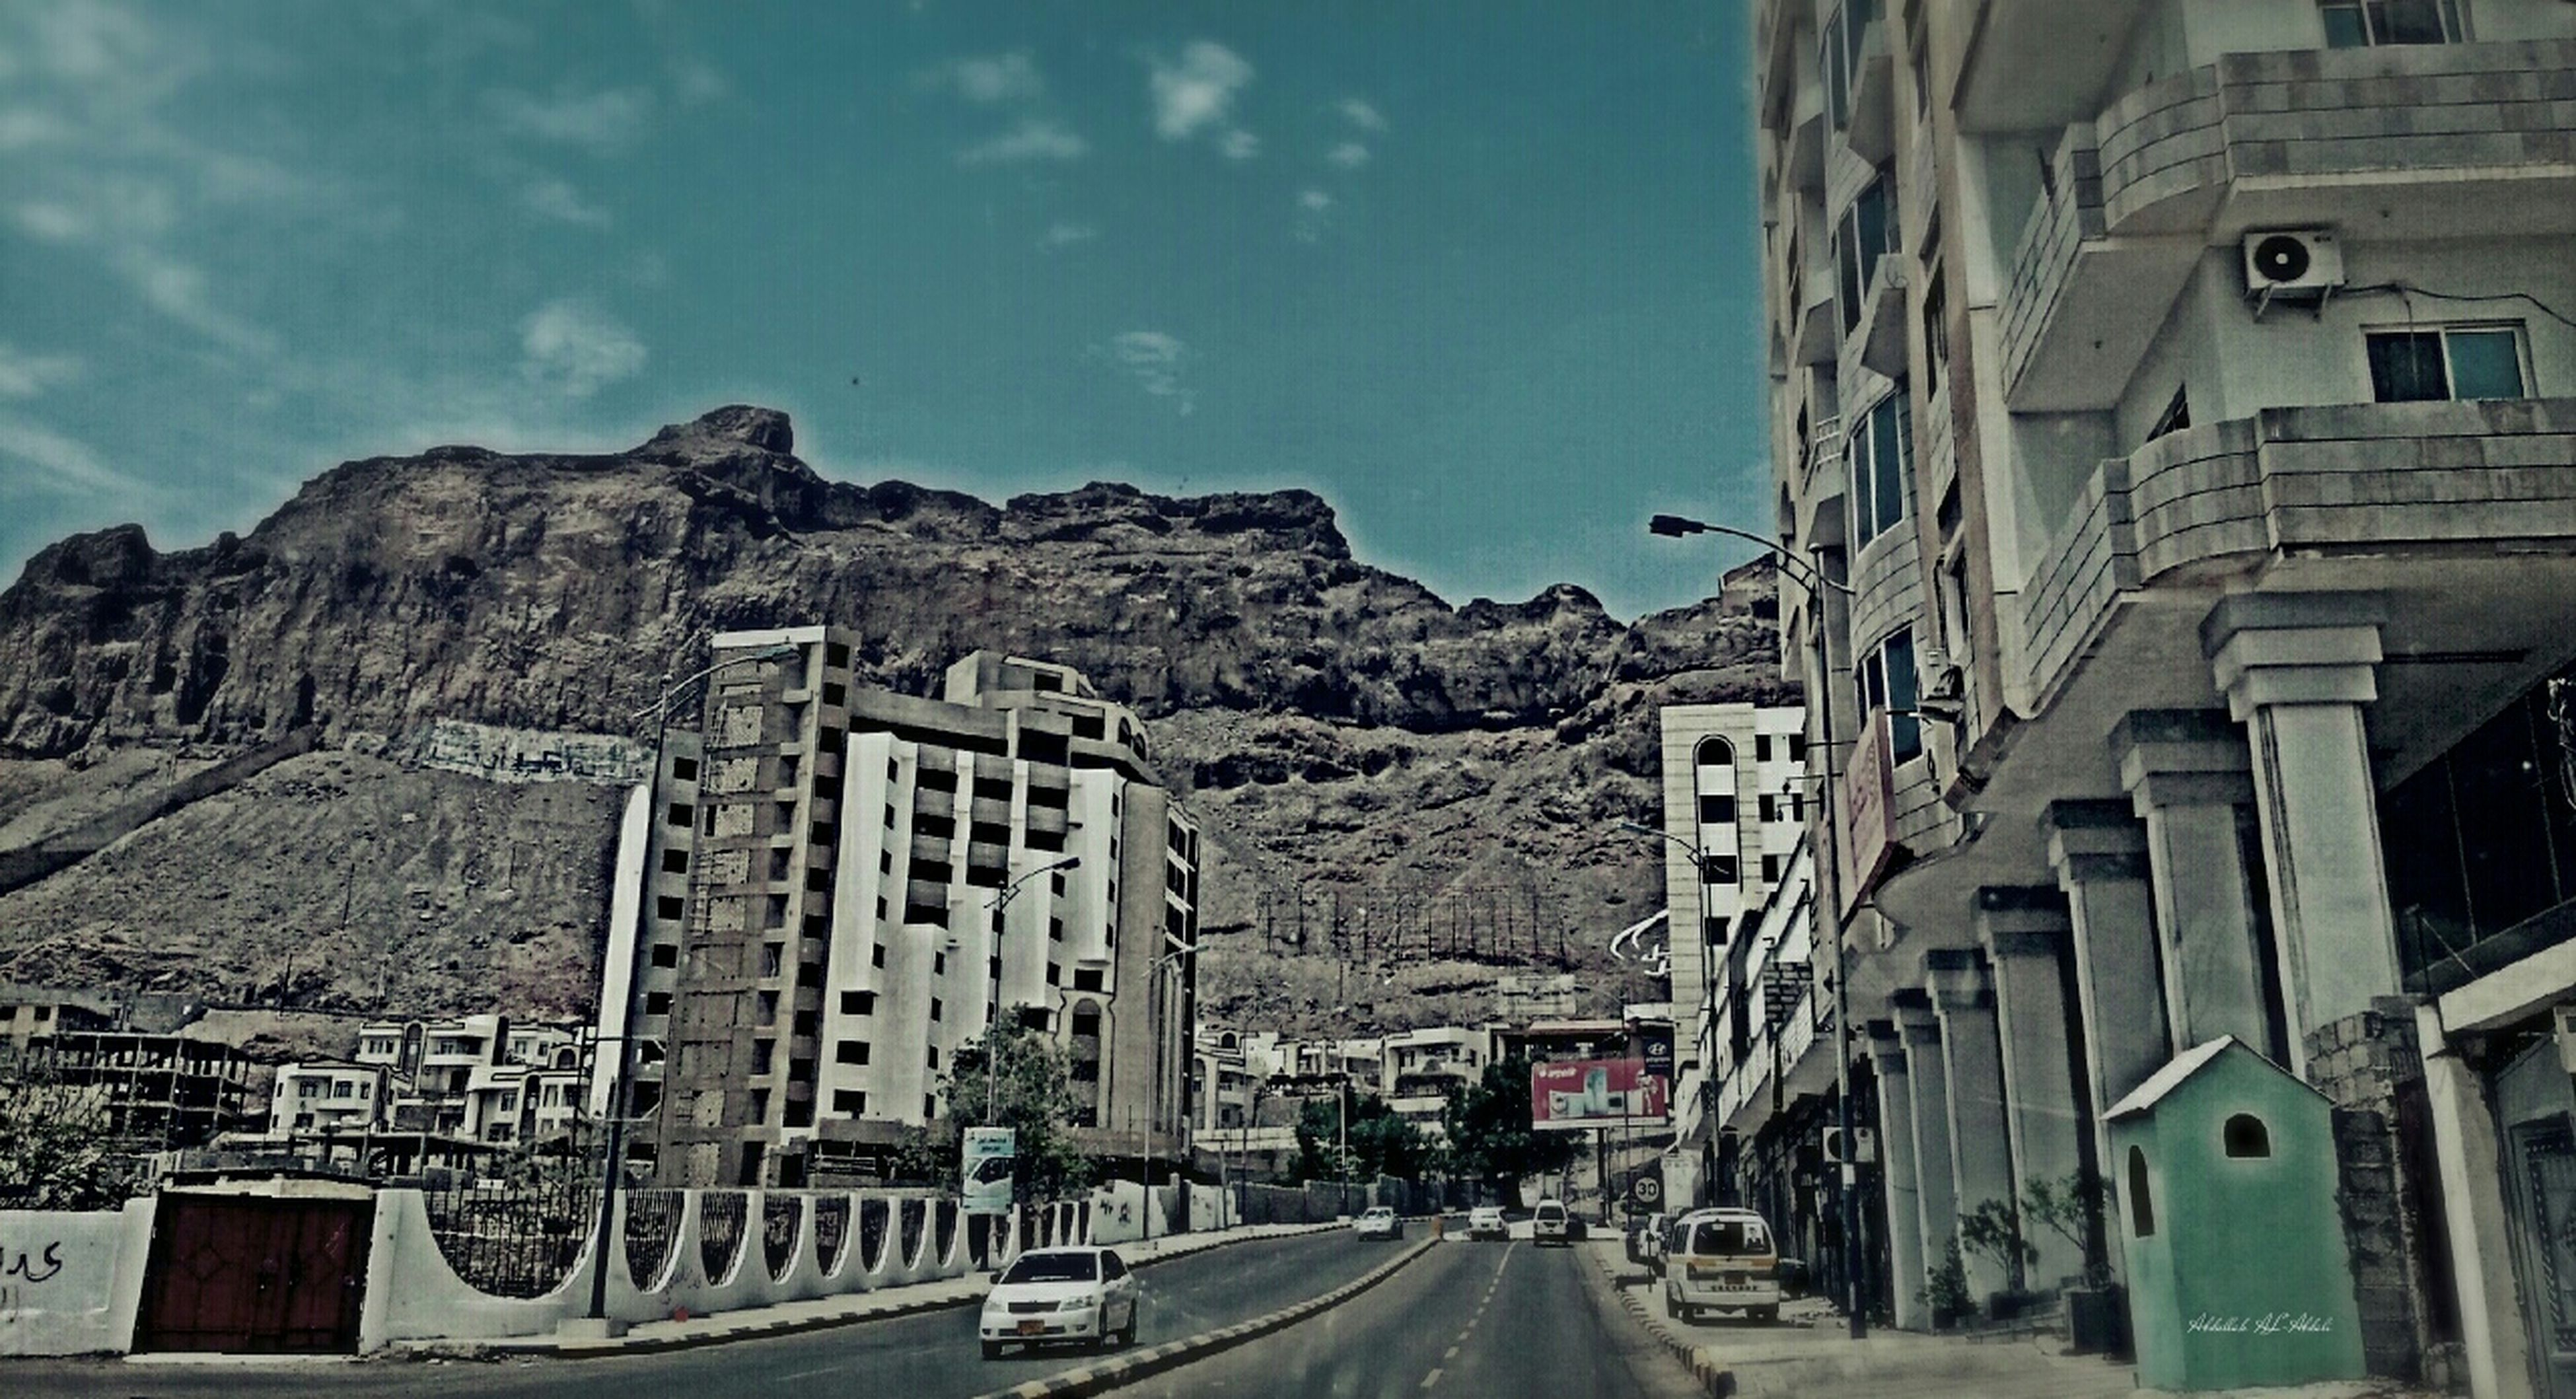 architecture, transportation, building exterior, car, built structure, land vehicle, road, mode of transport, street, mountain, sky, the way forward, city, residential building, outdoors, incidental people, vehicle, building, day, travel